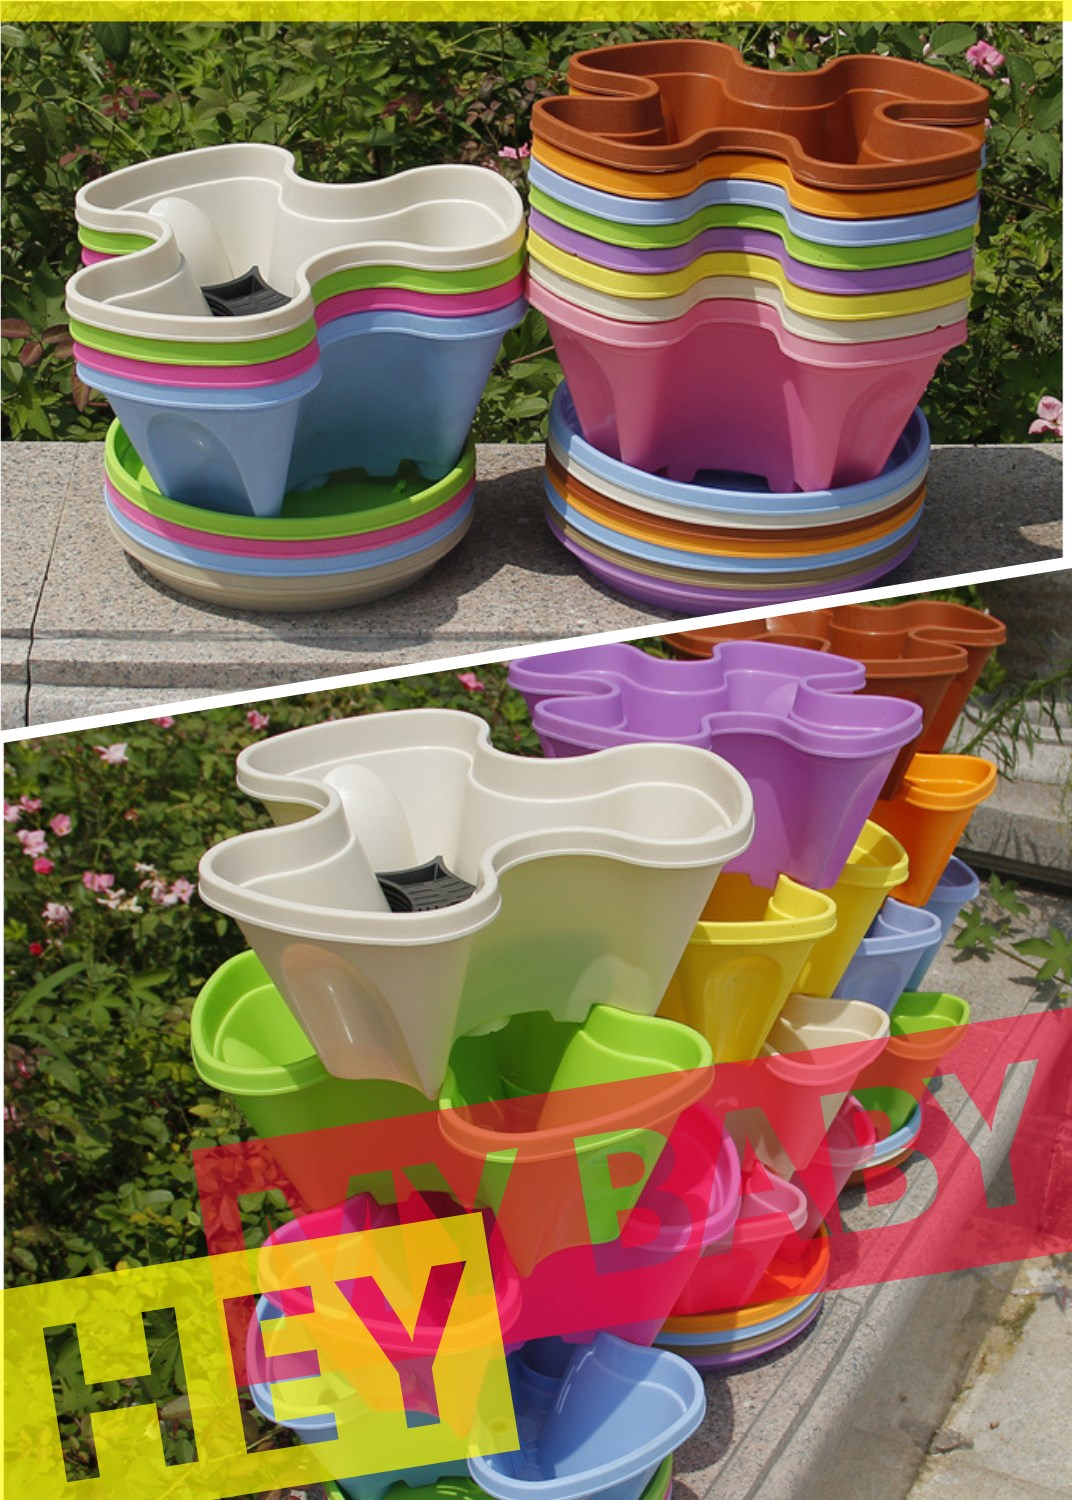 Vertical assembly PP hydroponic plastic flower growing pots with Competitive price